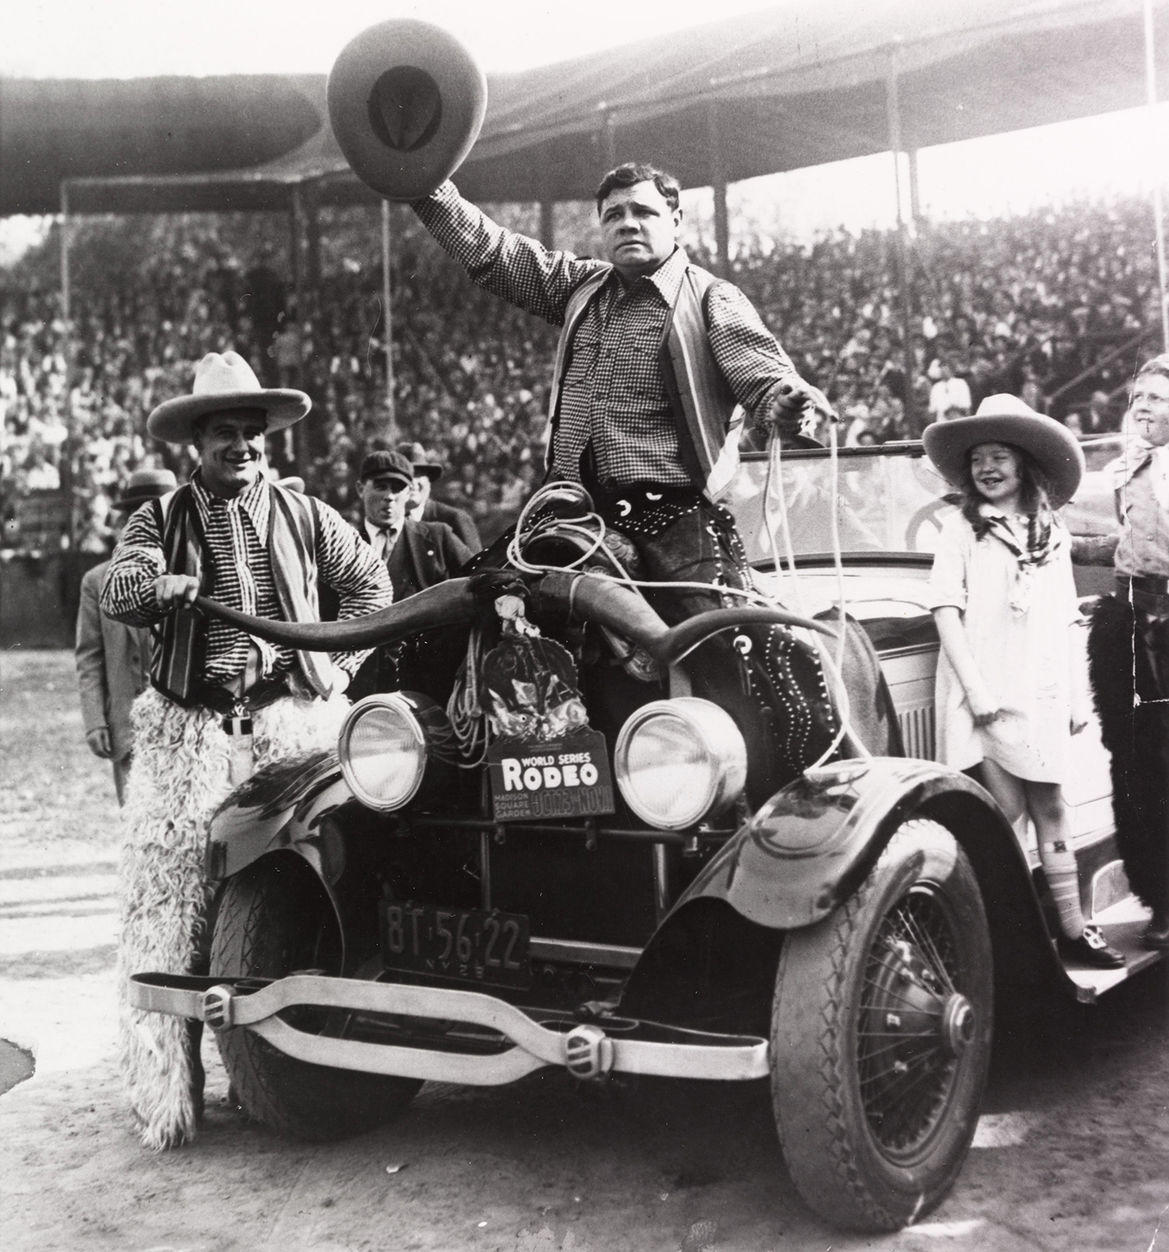 """Babe Ruth sits on a car and waves his cowboy hat to the crowd while Lou Gehrig stands beside the car and smiles during an advertising stunt for the World Series Rodeo. <a href=""""http://collection.baseballhall.org/islandora/object/islandora%3A214527"""">PASTIME</a>"""